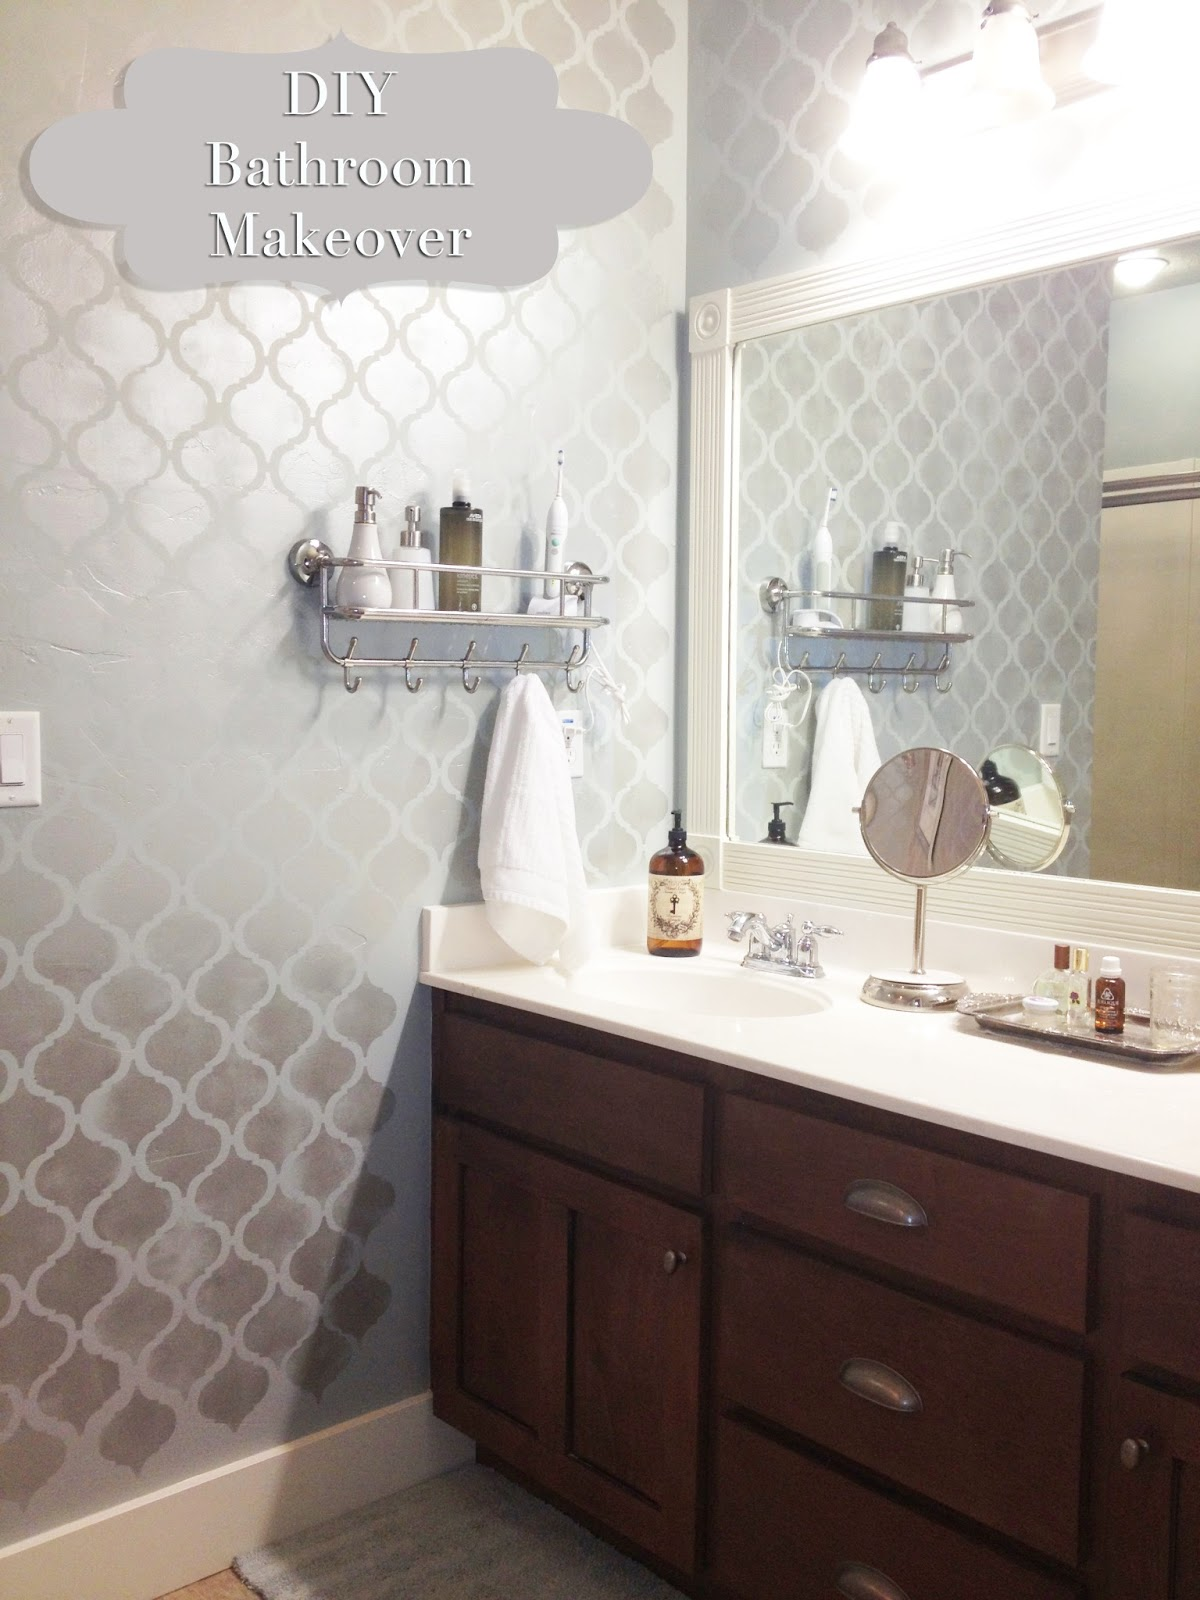 Diy bathroom 2017 grasscloth wallpaper for Pictures of bathroom makeovers